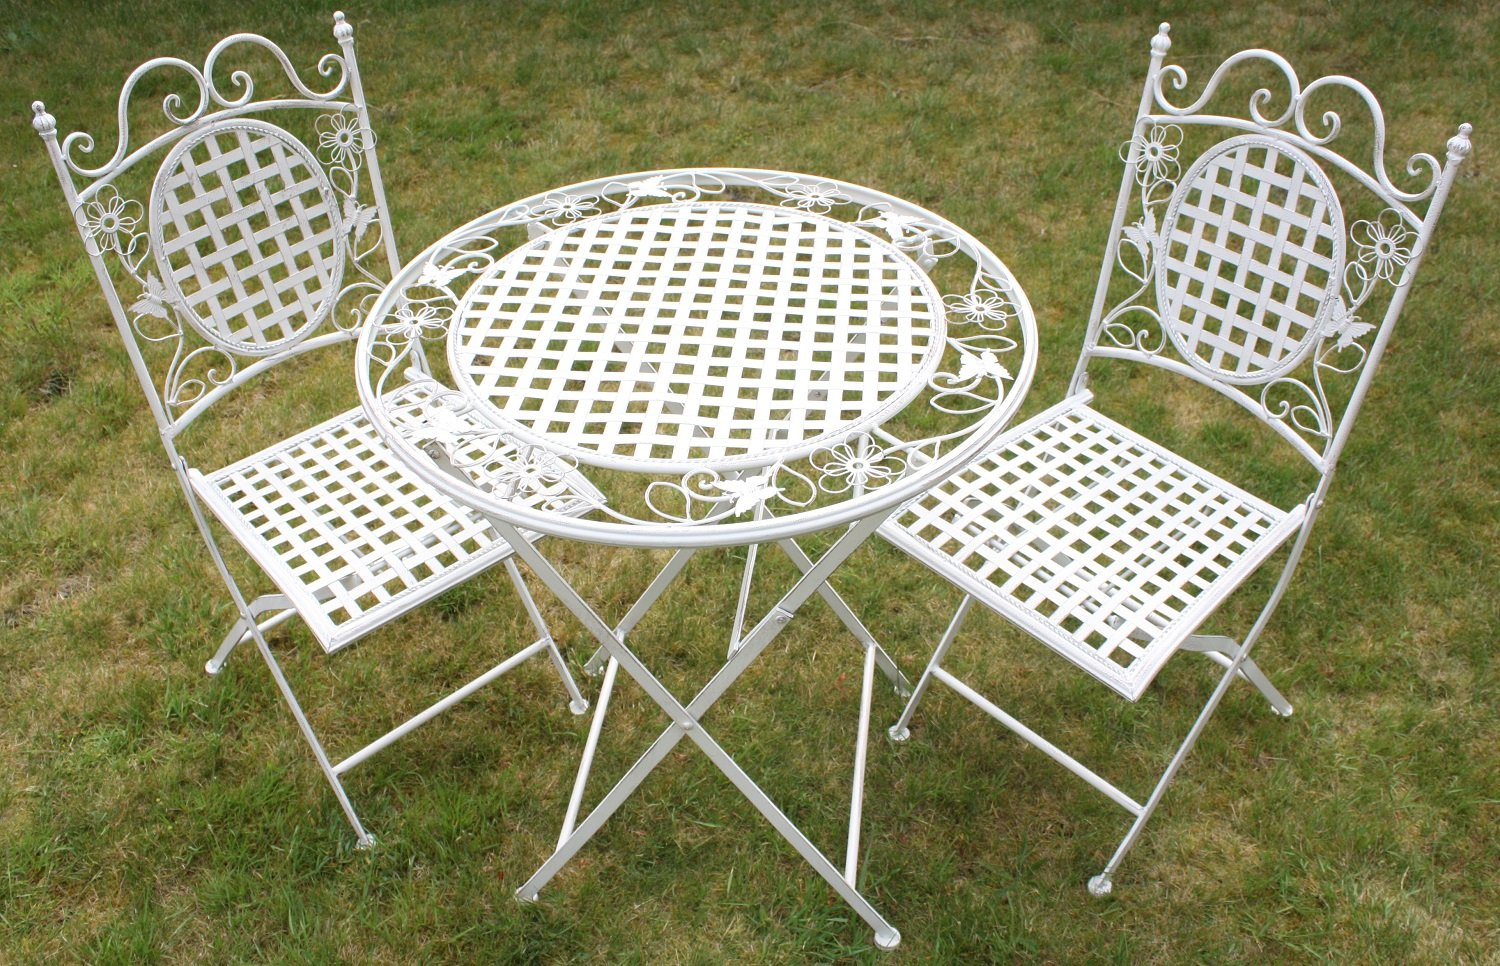 Maribelle White Round Metal Floral Designed Folding Outdoor Garden Patio Dining Table And Two Square Chairs